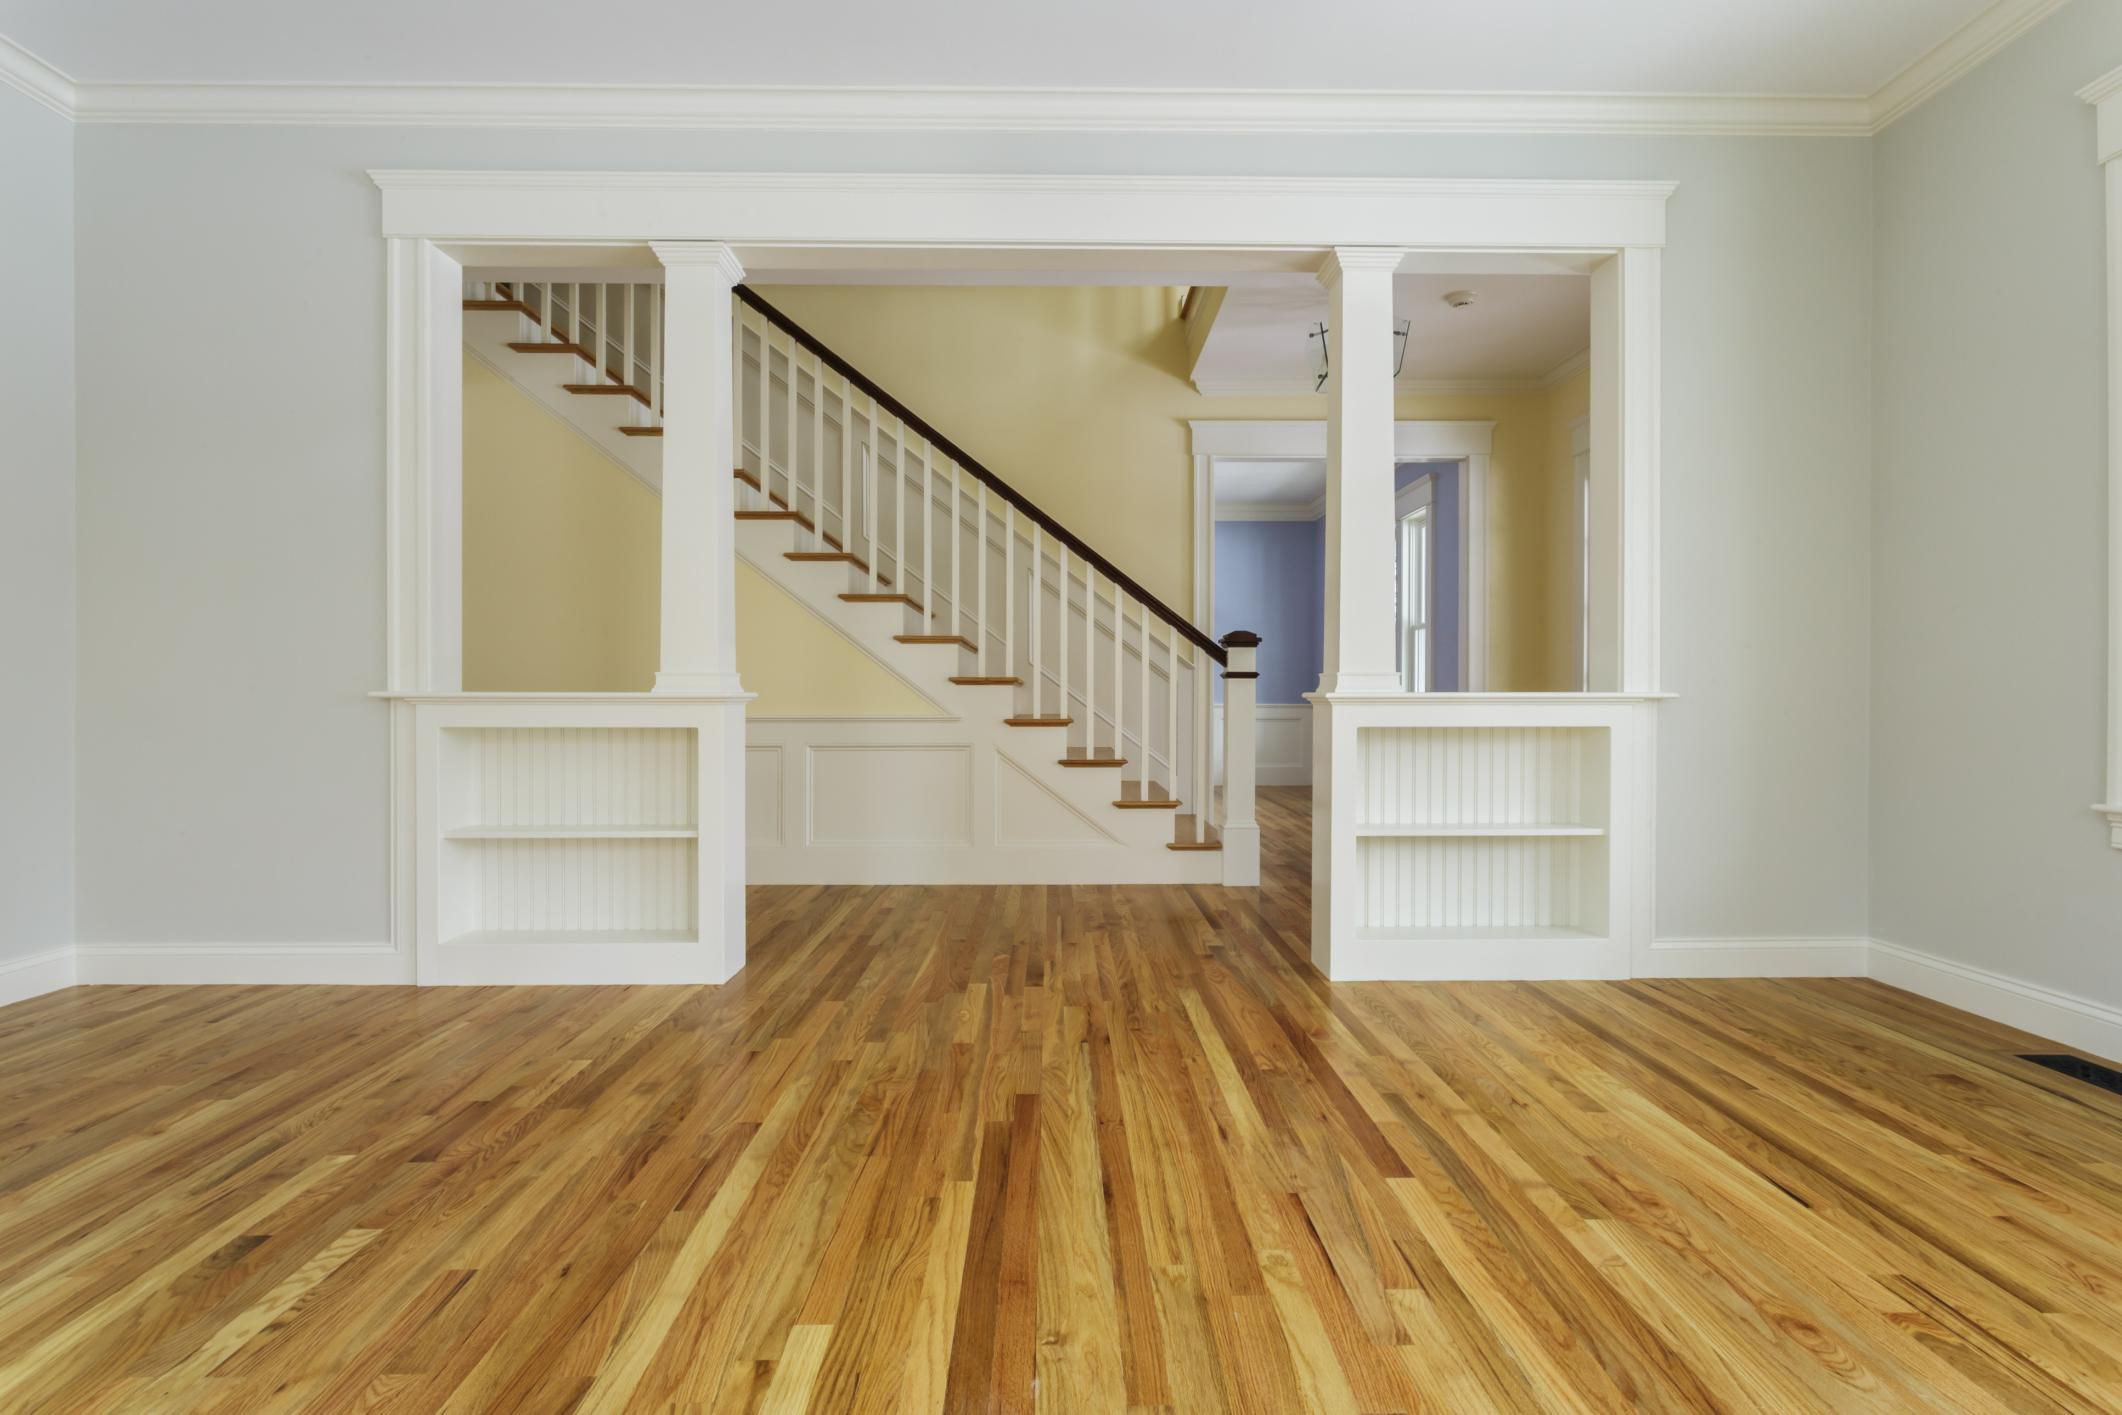 engineered hardwood flooring cost estimator of guide to solid hardwood floors inside 168686571 56a49f213df78cf772834e24